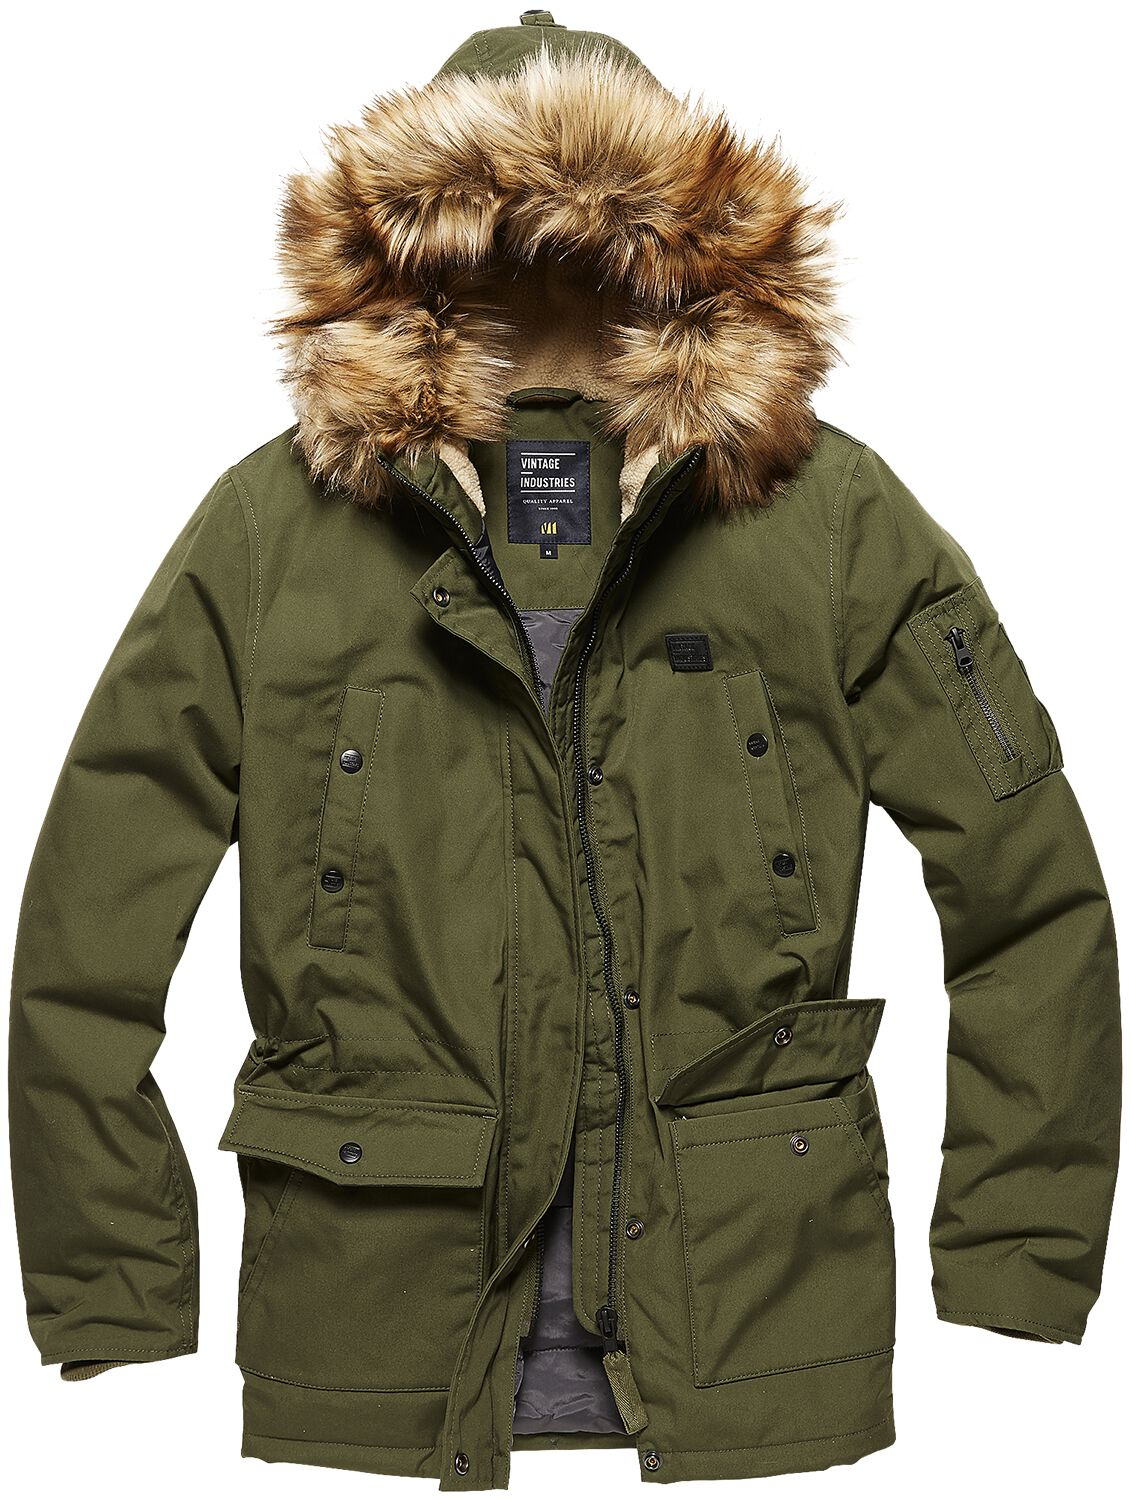 Jacken für Frauen - Vintage Industries Hailey Ladies Parka Girl Winter Jacke oliv  - Onlineshop EMP